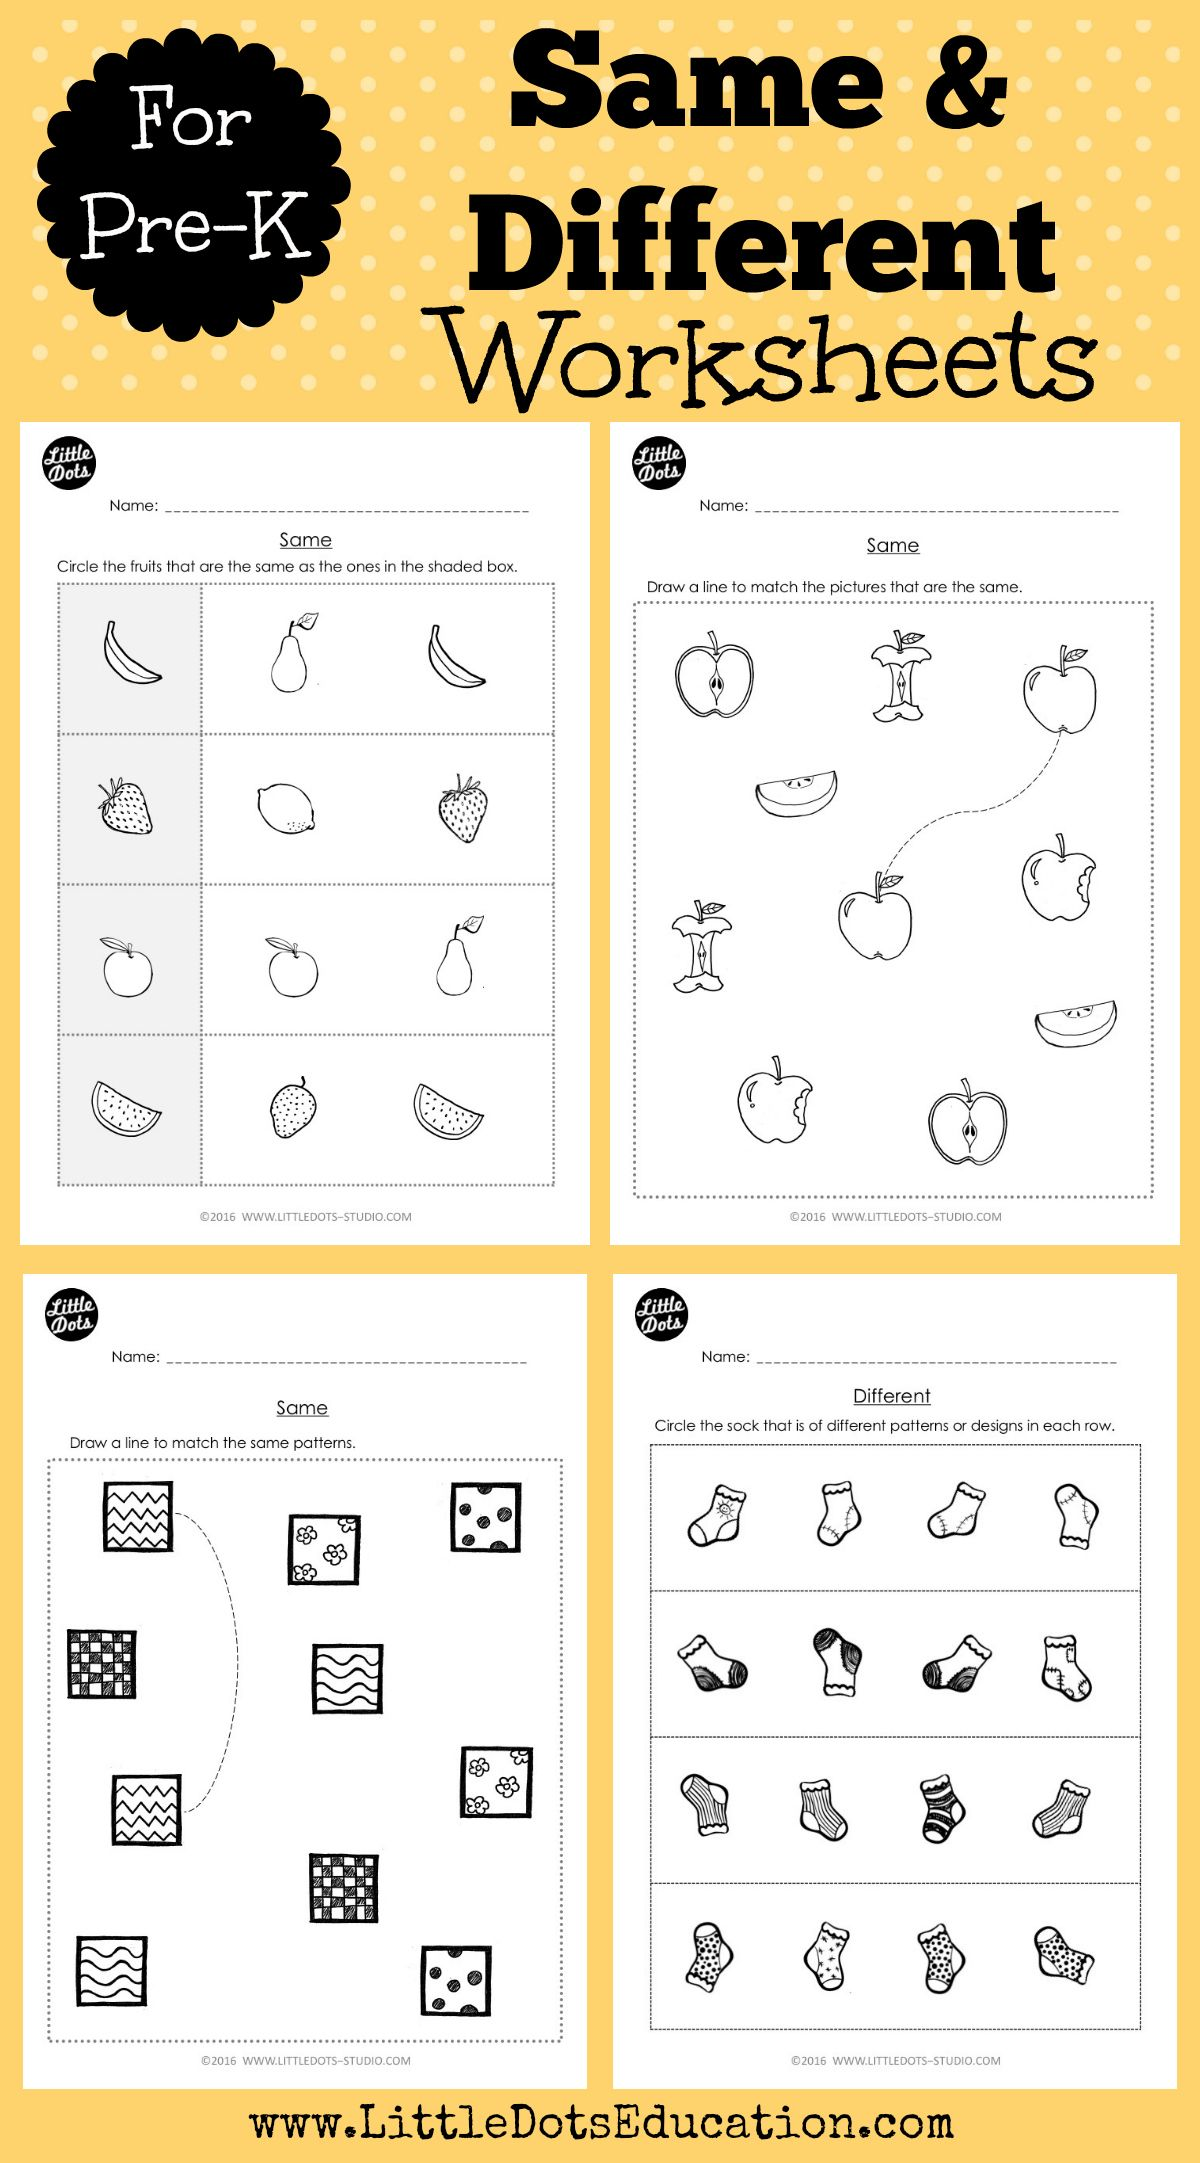 worksheet Same And Different Worksheets download worksheets and activities to learn the concept of same different for pre k